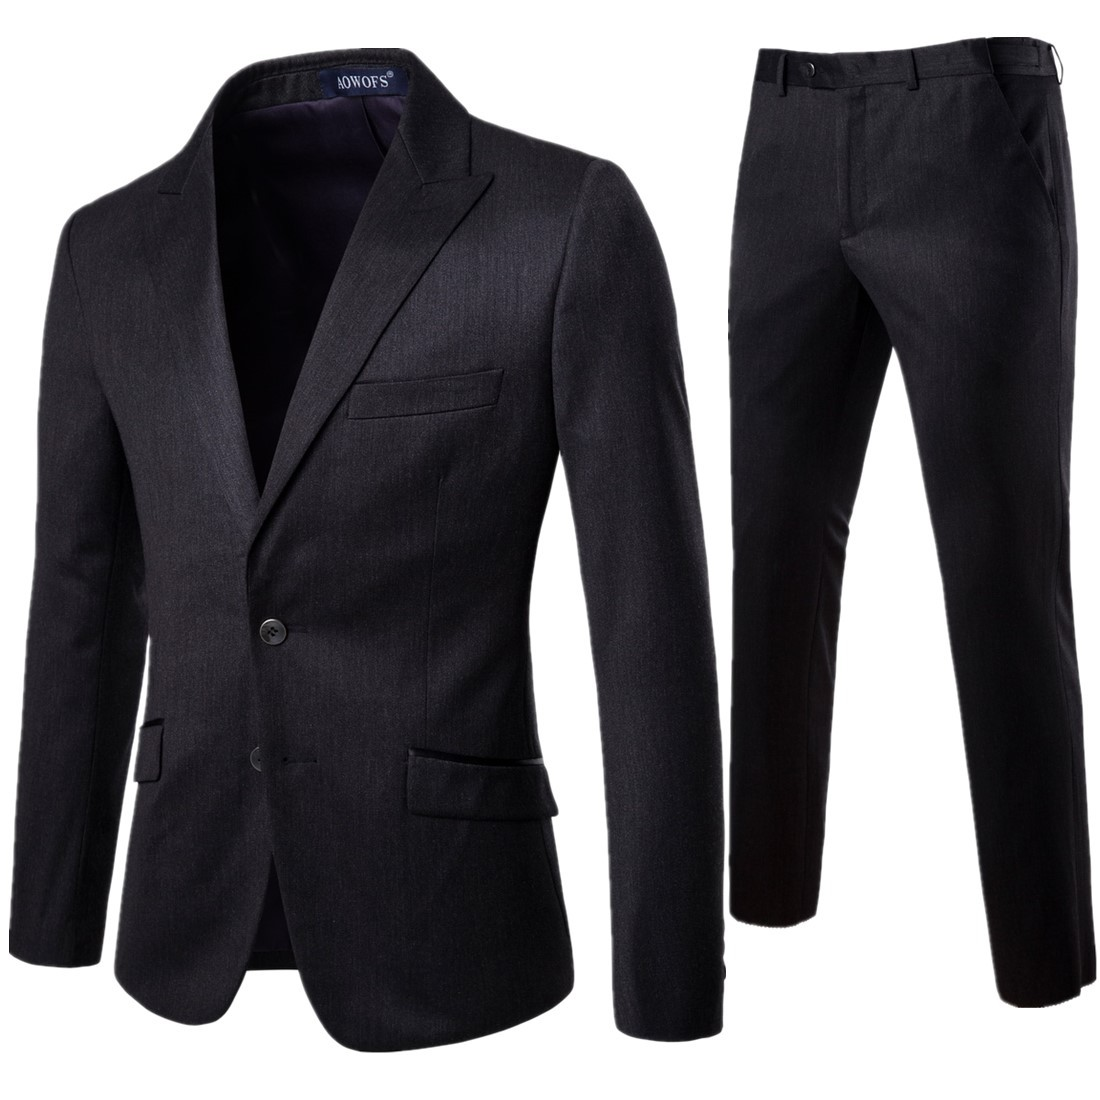 61f010d3ad Blazers Cheap Blazers XF008 New Men Suit 2 Pieces Professional.We offer the  best wholesale price, quality guarantee, professional e-business service  and ...